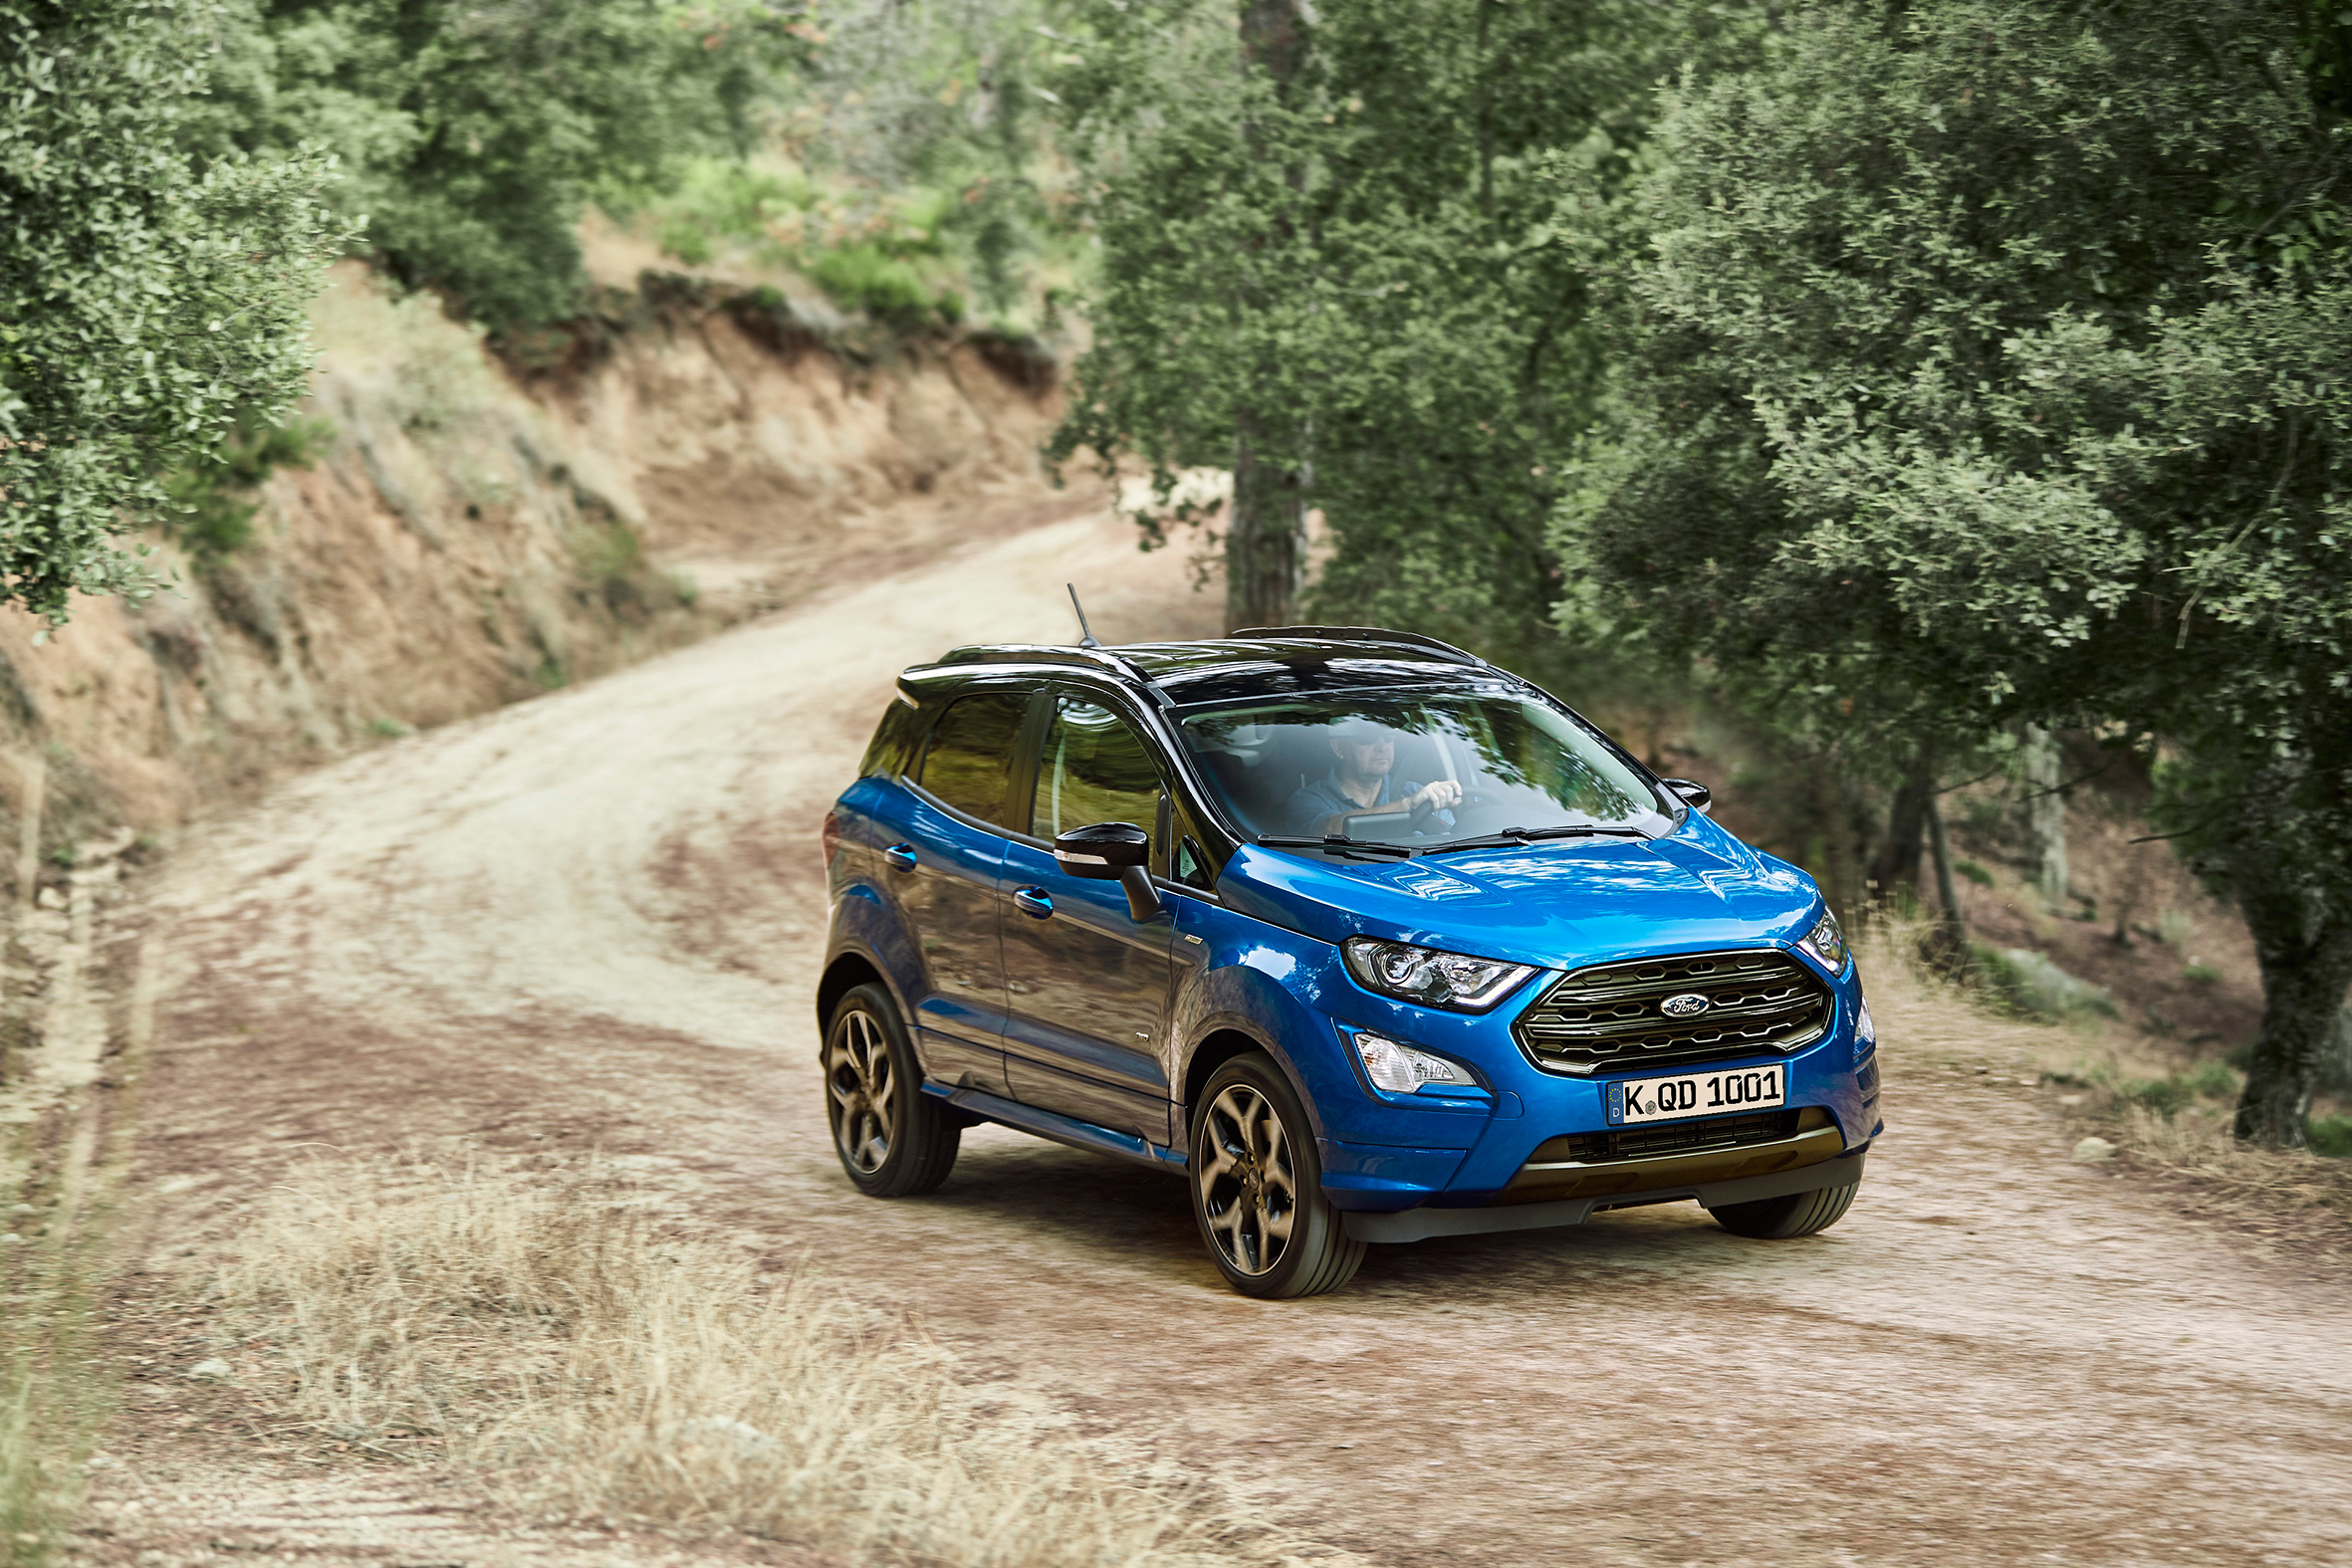 ▷ Neuer Ford EcoSport: Verbesserte Qualität, moderne Technologie on ford ranger, ford suv, ford fusion, ford everest, ford c-max, ford econoline, ford figo, ford galaxy, ford escape, ford fiesta, ford explorer, ford ka, ford excursion, ford mondeo, ford flex, ford endeavour, ford gt, ford focus, ford edge, ford mustang,